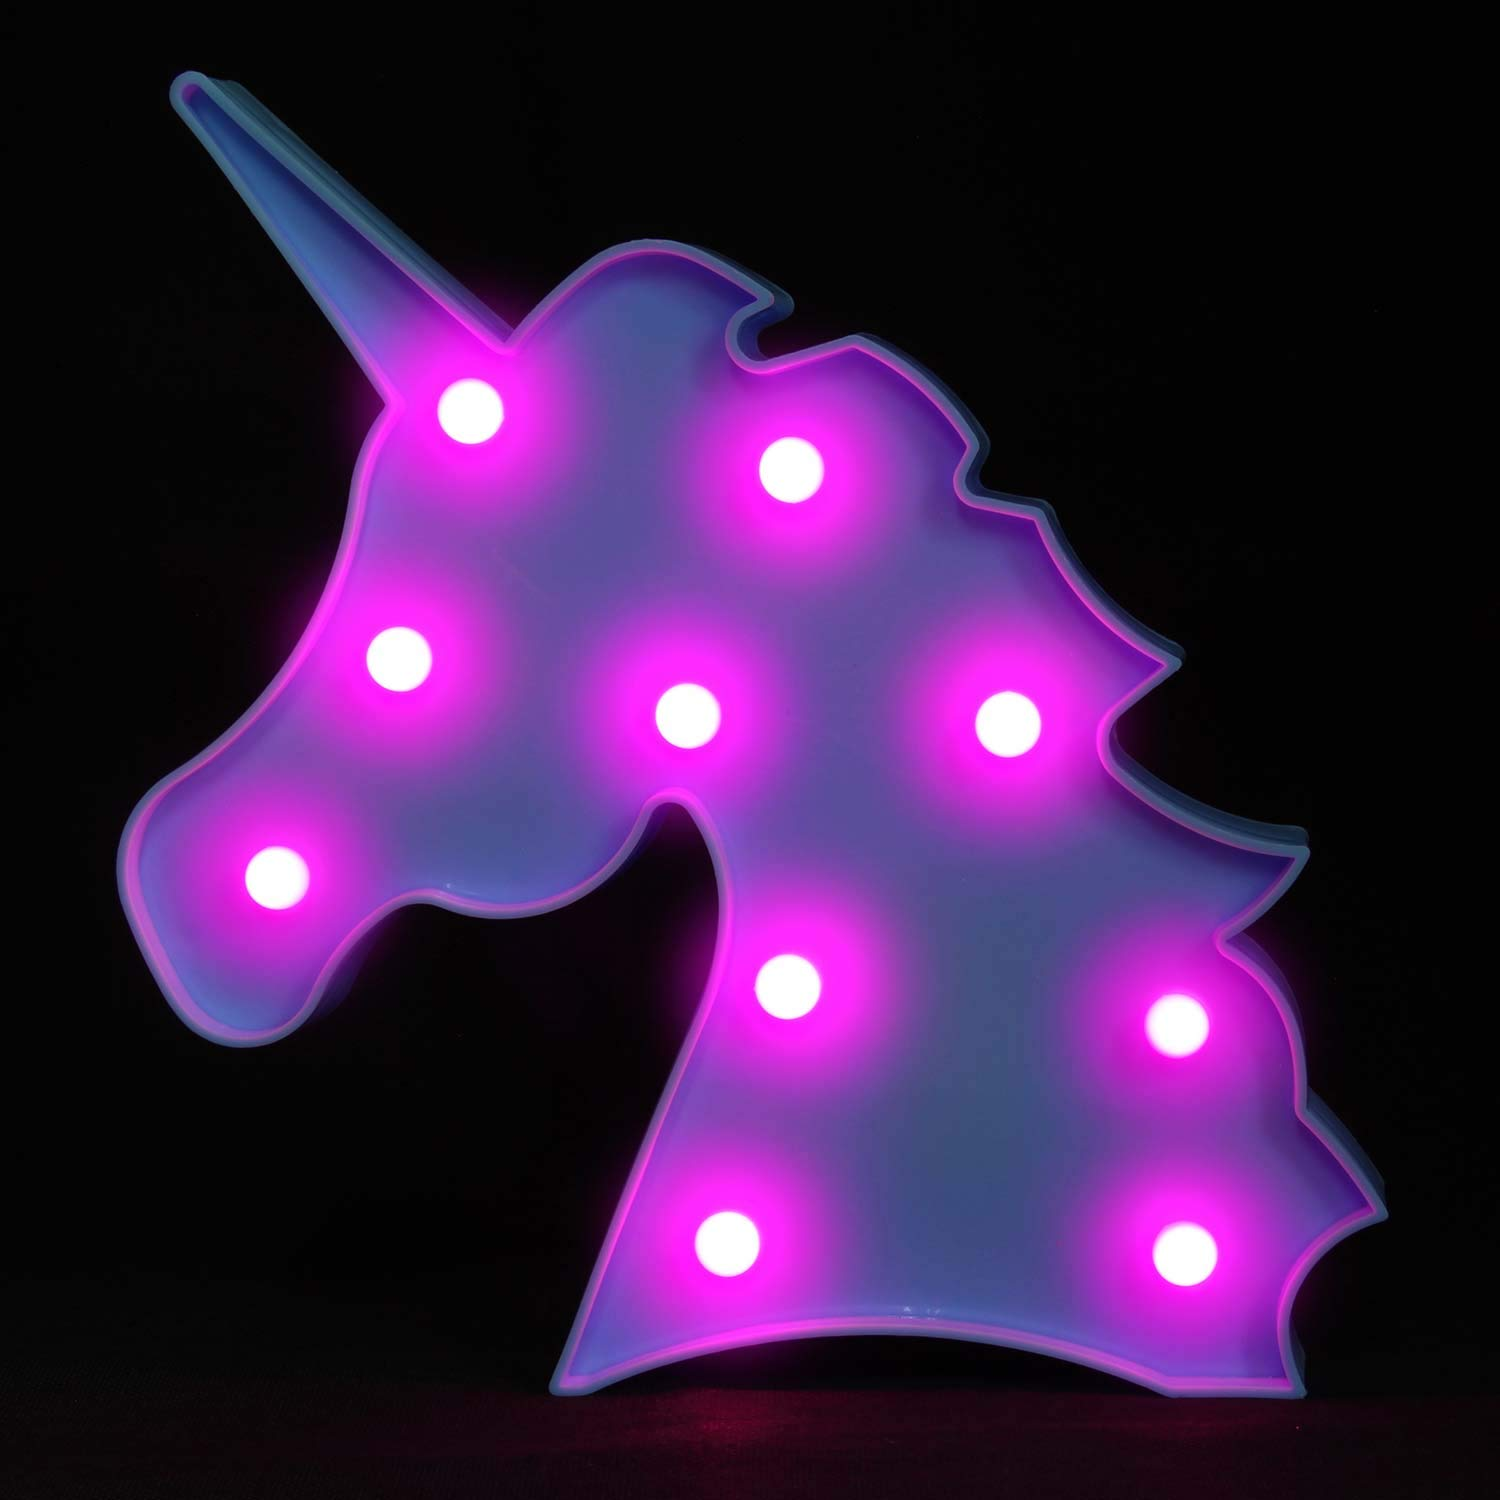 OYE HOYE Unicorn Night Light, Blue Unicorn LED Lamp Unicorn Marquee for Wall Decoration Bedroom Kids Living Room Battery Operated by OYE HOYE